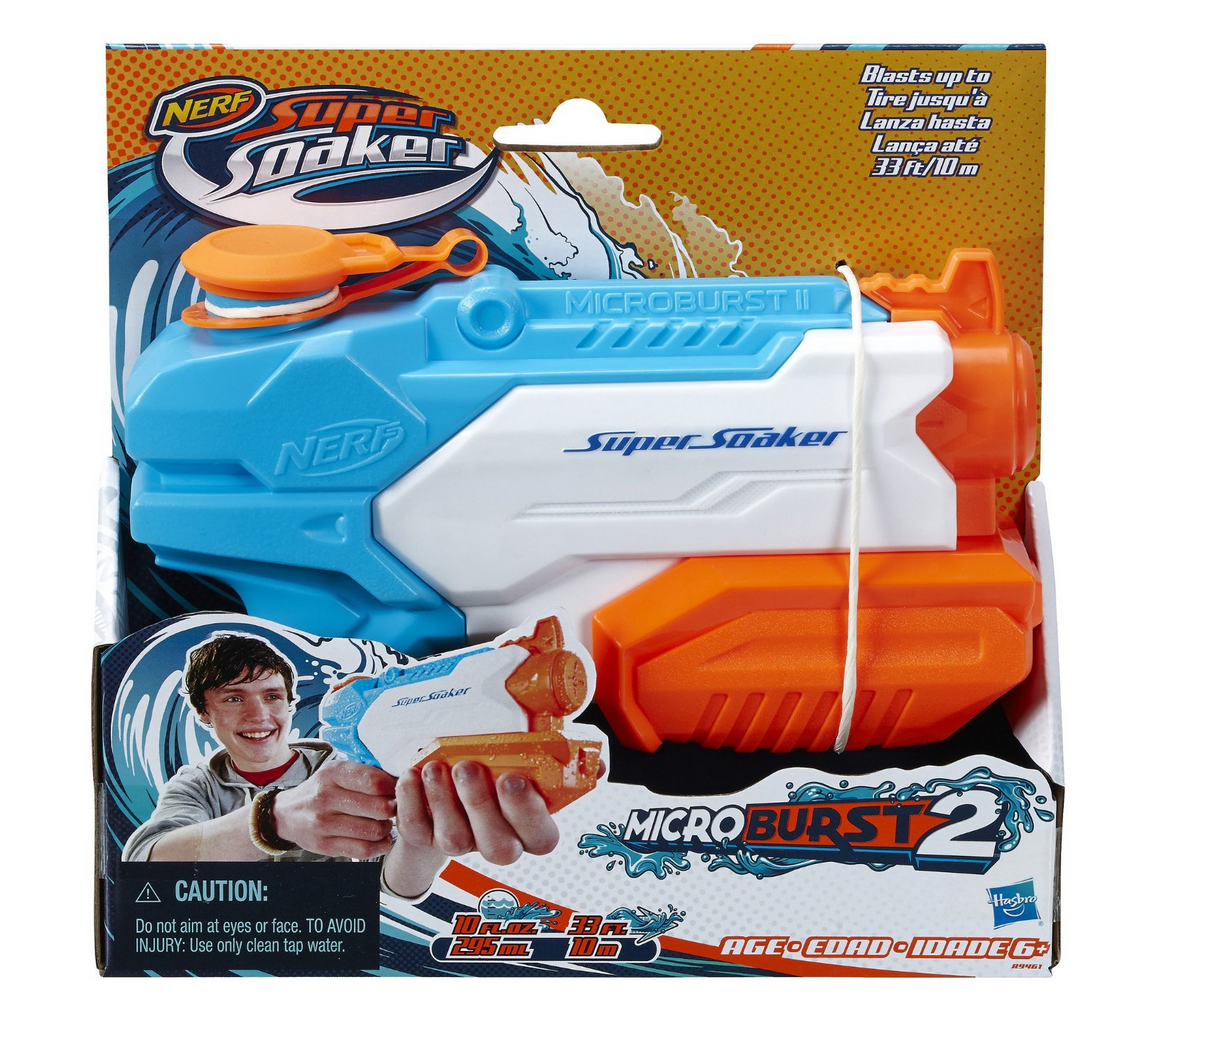 Up to 50% Off Select Nerf Blasters & Accessories – Prices Start at Just $3.99!